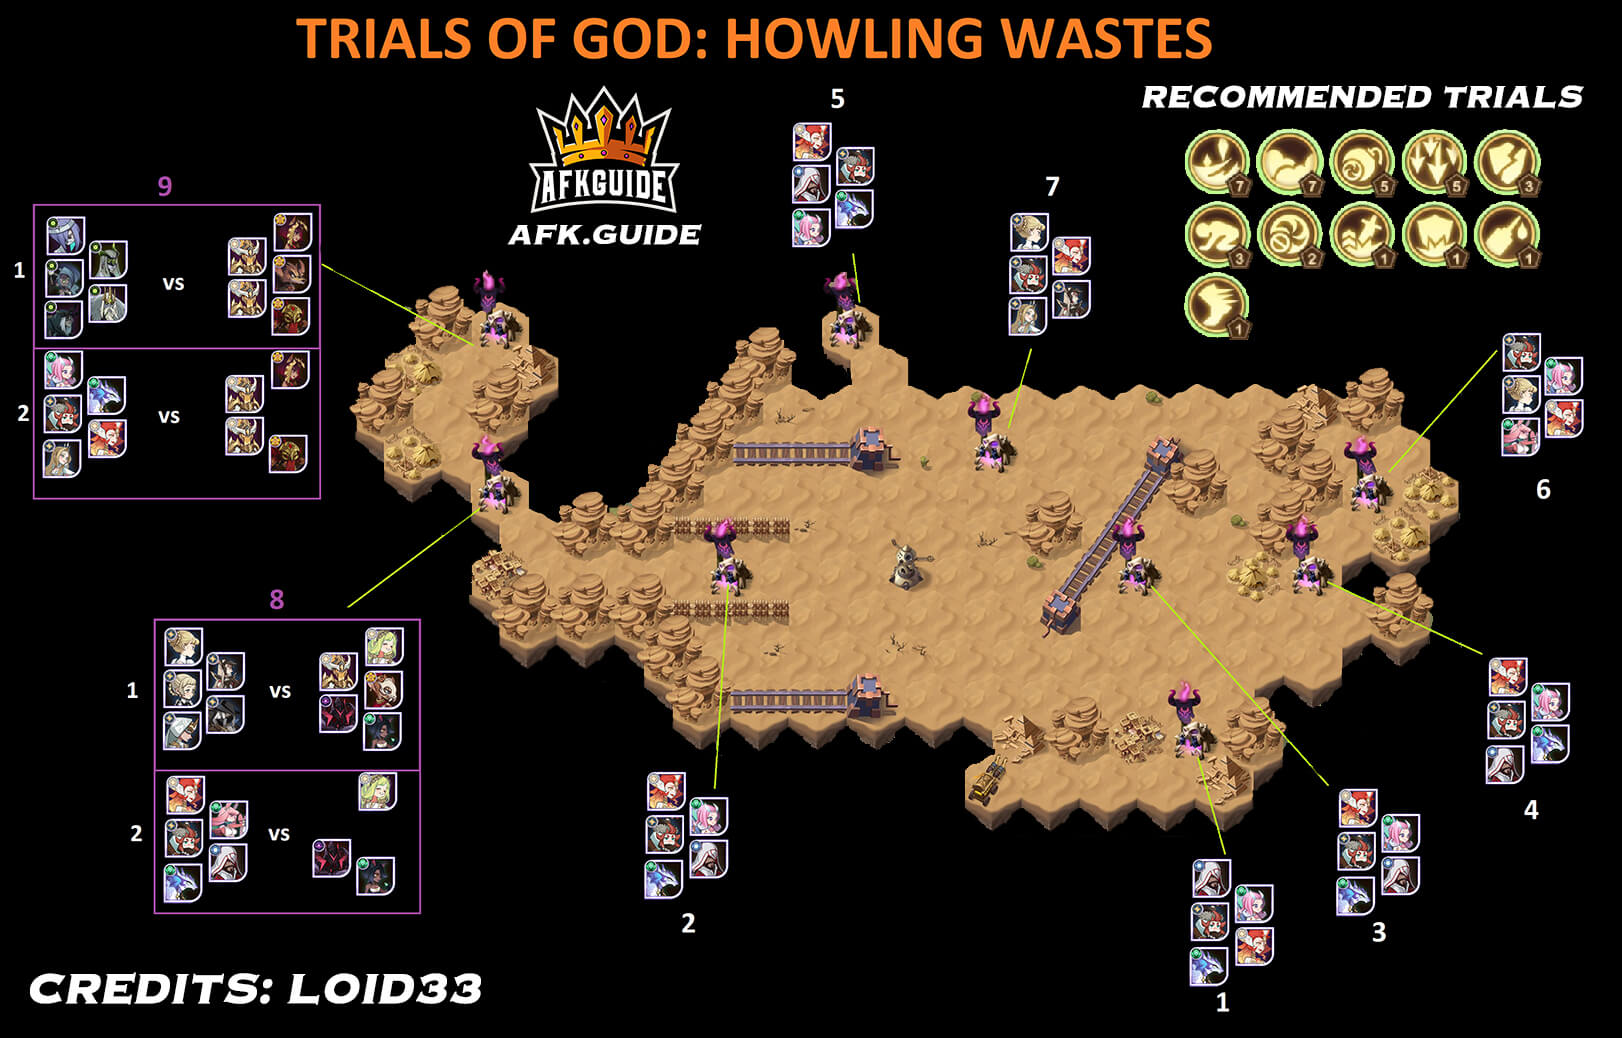 trials of god howling wastes